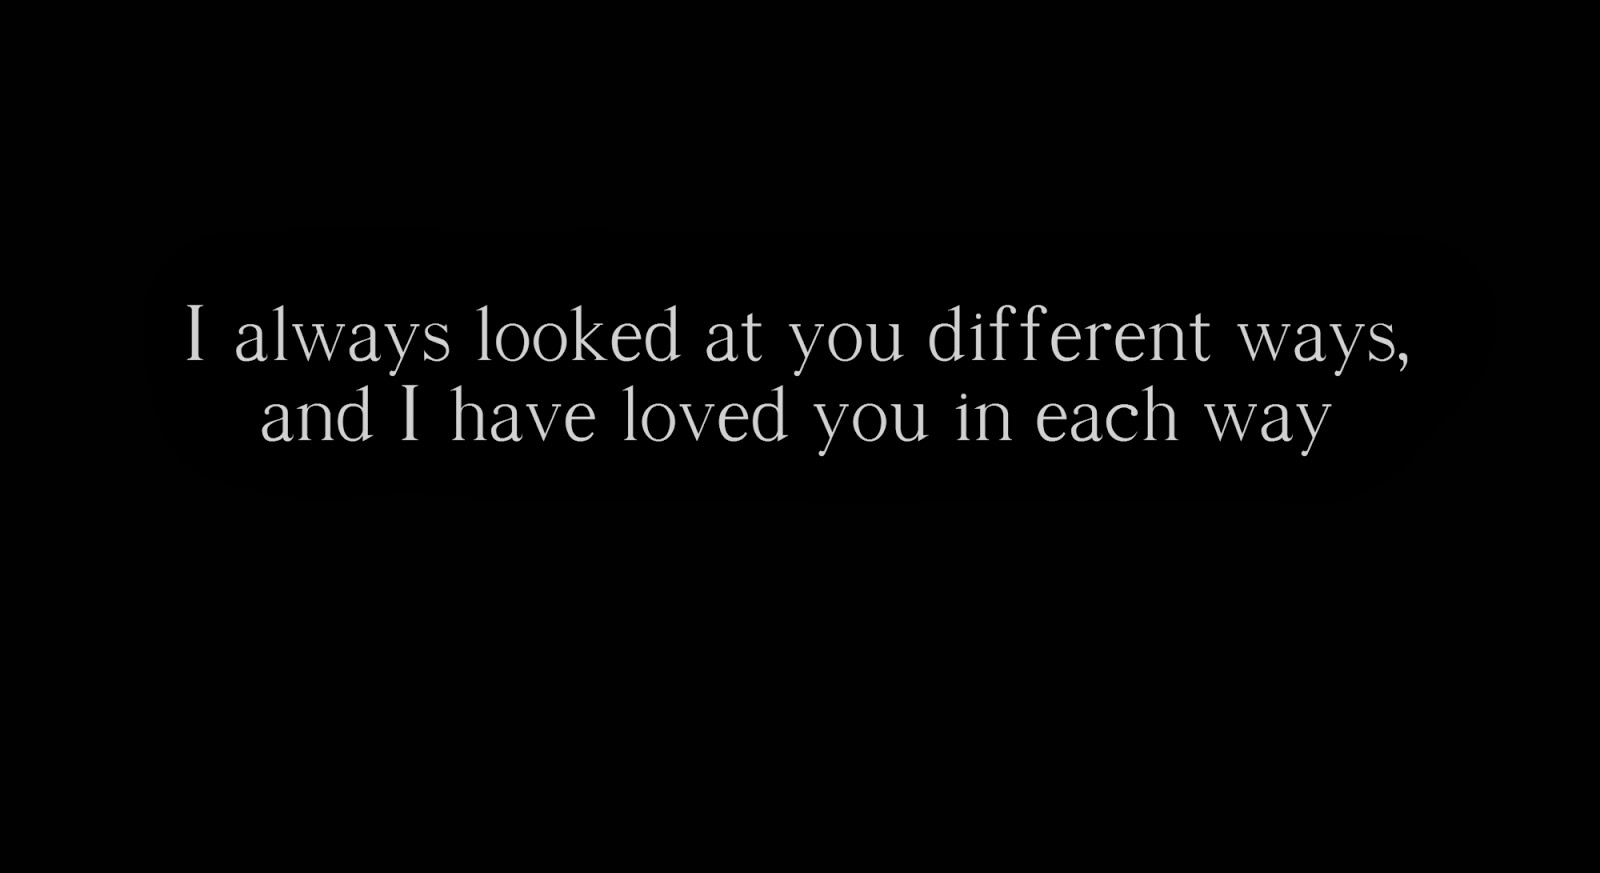 I always looked at you different ways, and I have loved you in each way